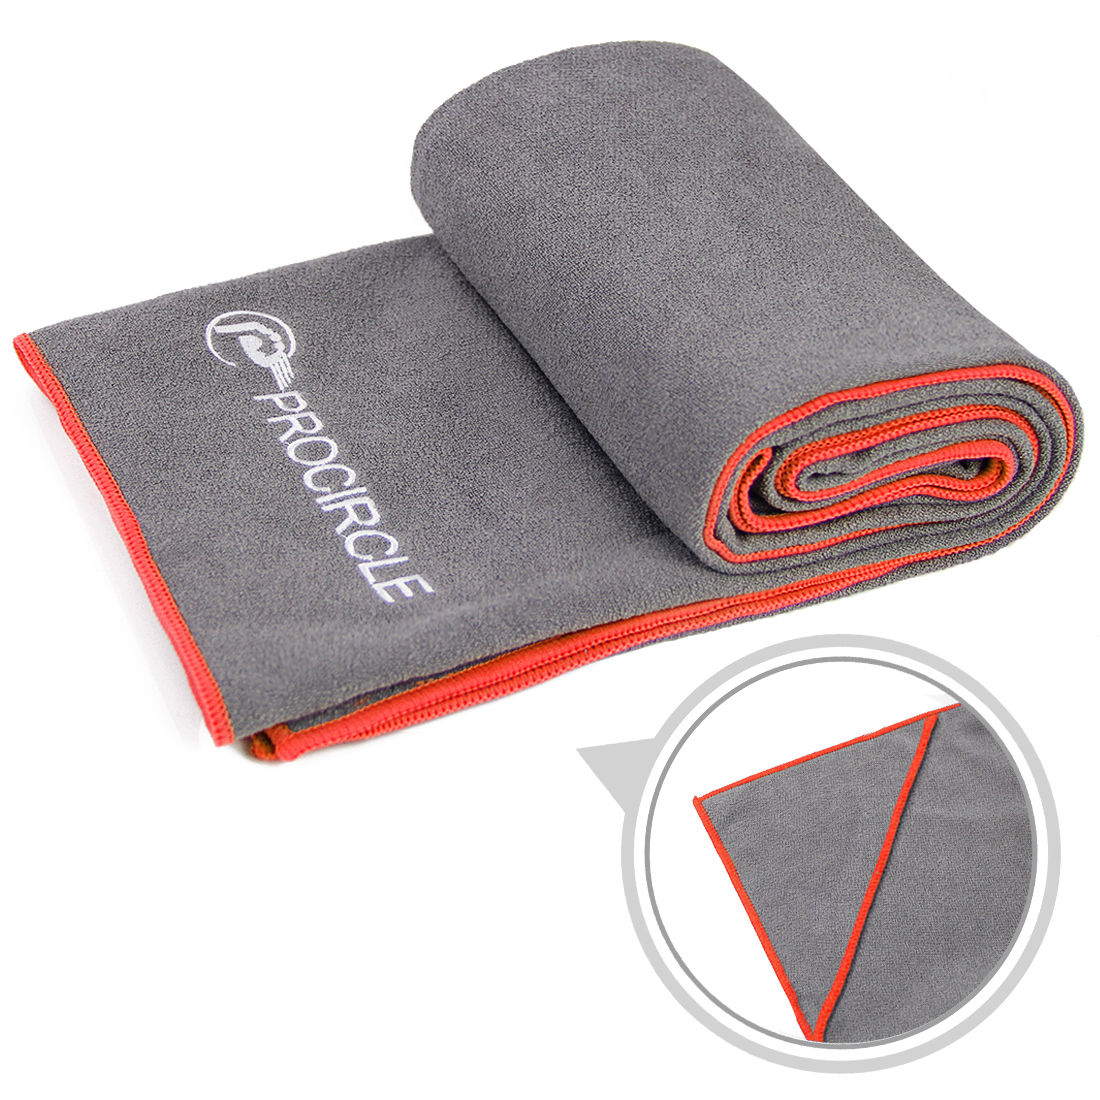 Extra Thick 6mm Pvc Non Slip Yoga Mat For Sale